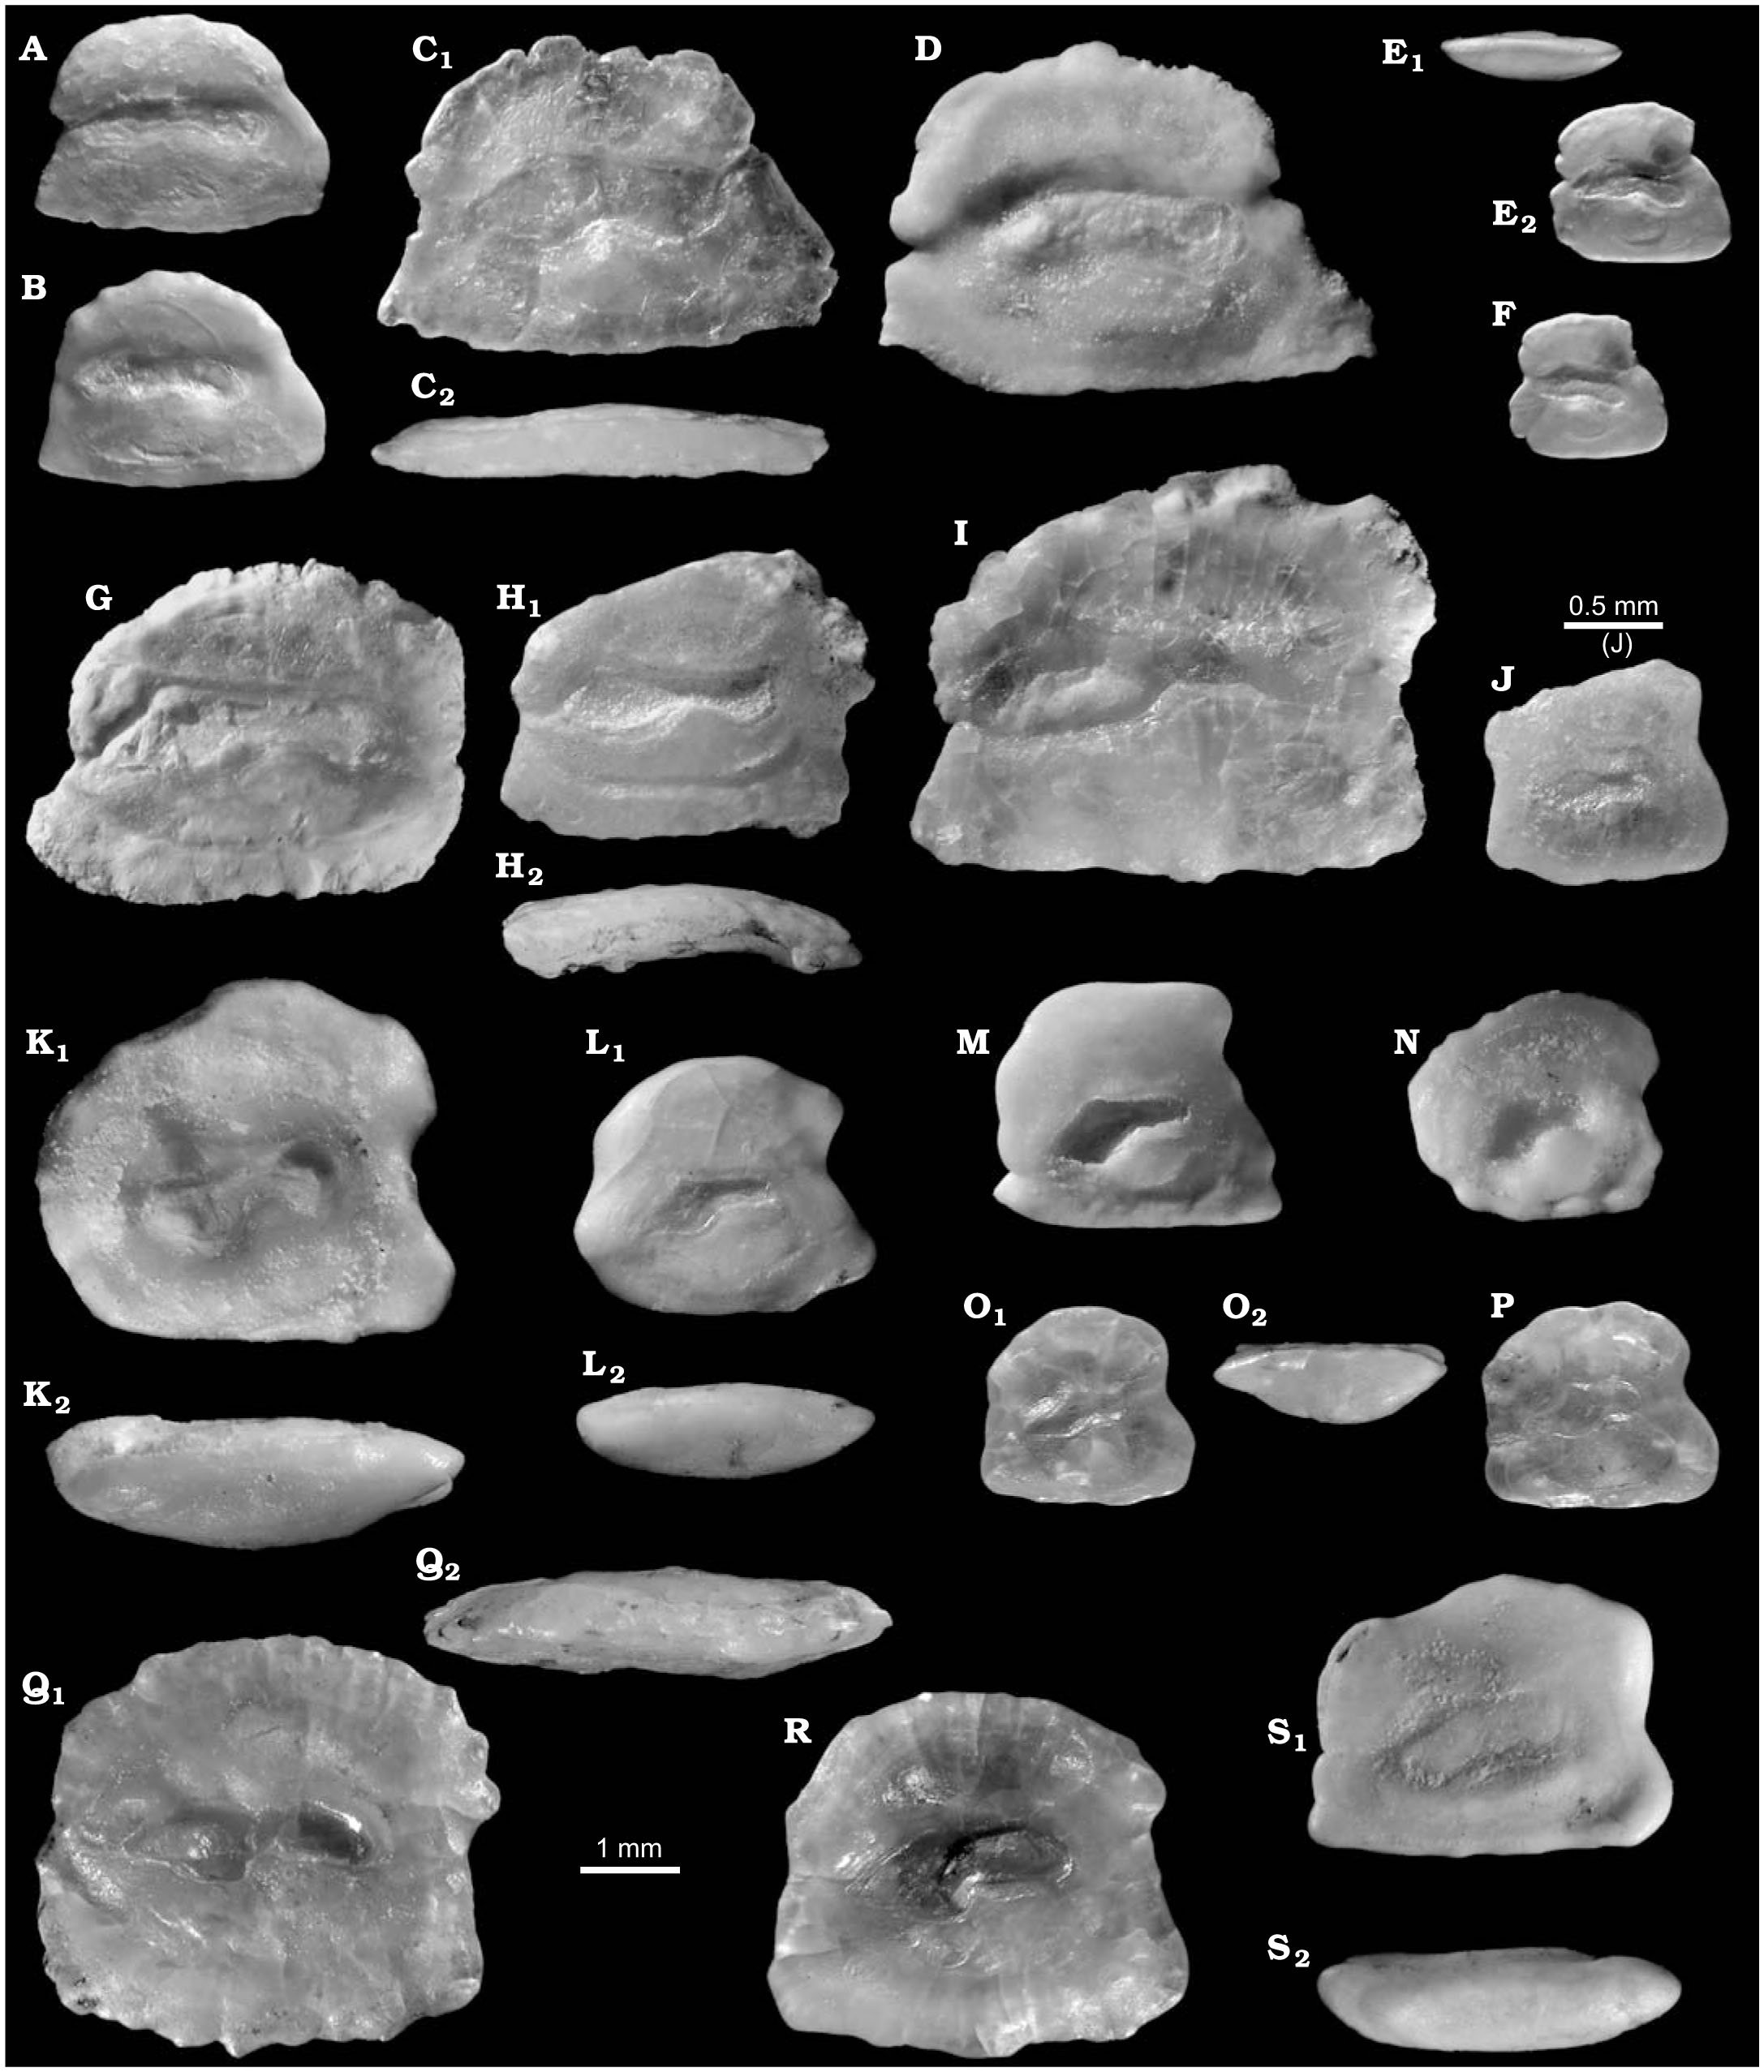 Fish Remains, Mostly Otoliths, from the Non-Marine Early